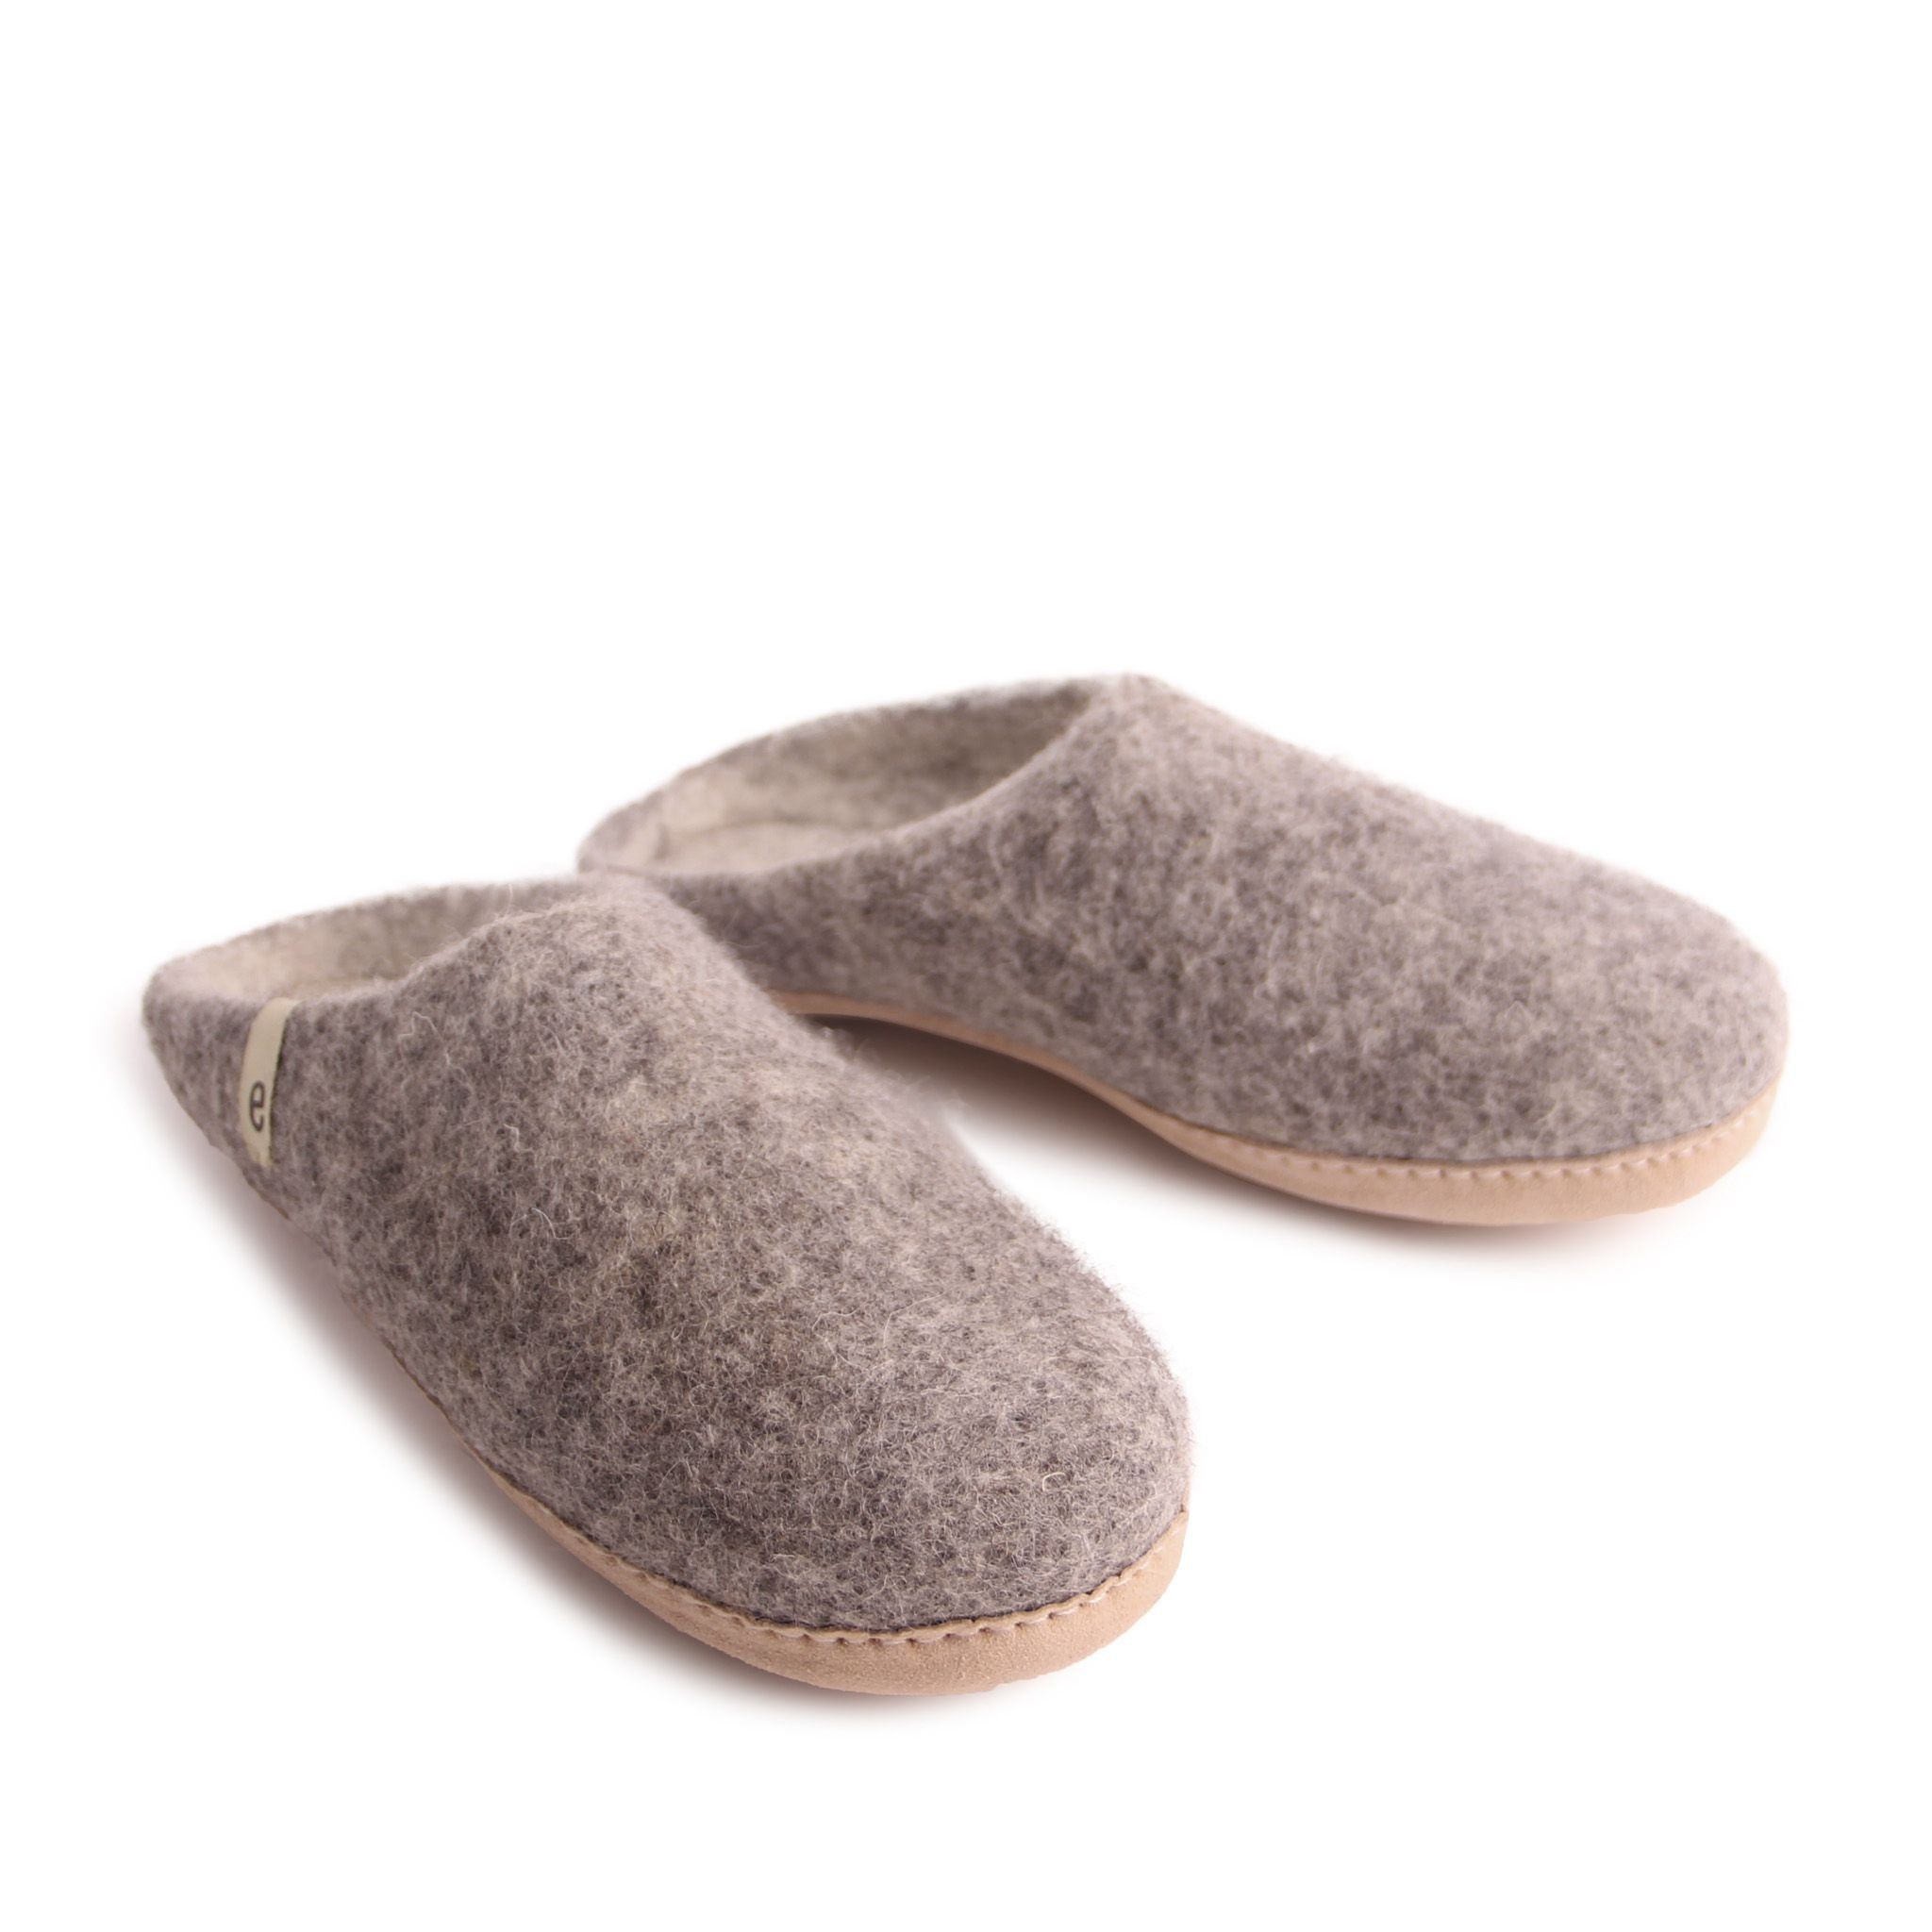 Egos Slip-on Indoor Shoe Simple in Natural Grey